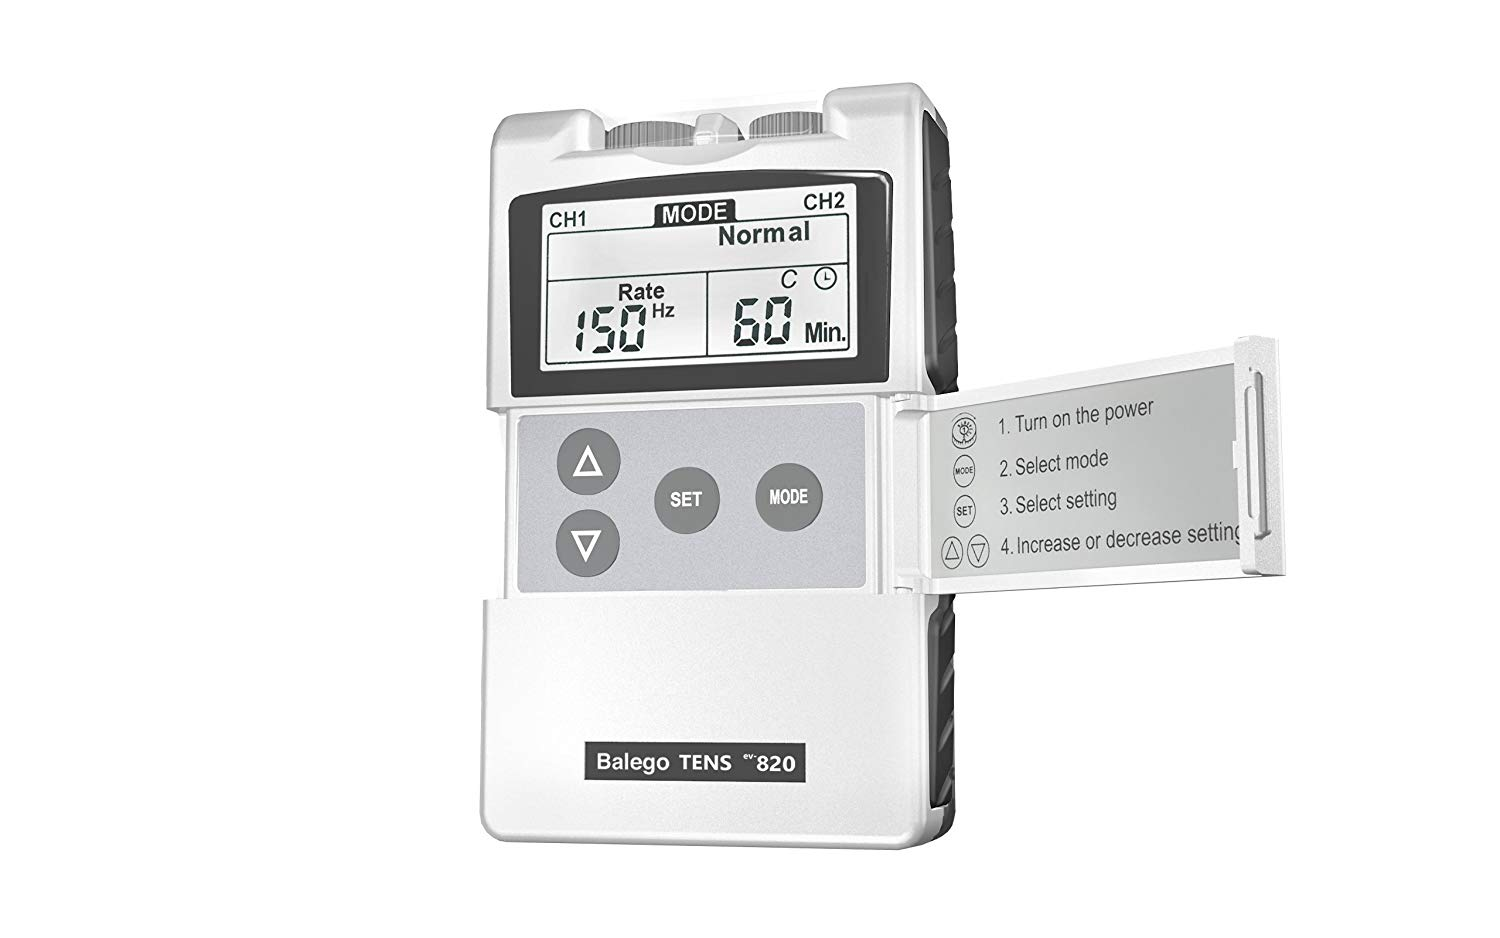 Balego™ TENS Digital unit with 100mA output and 5 modes